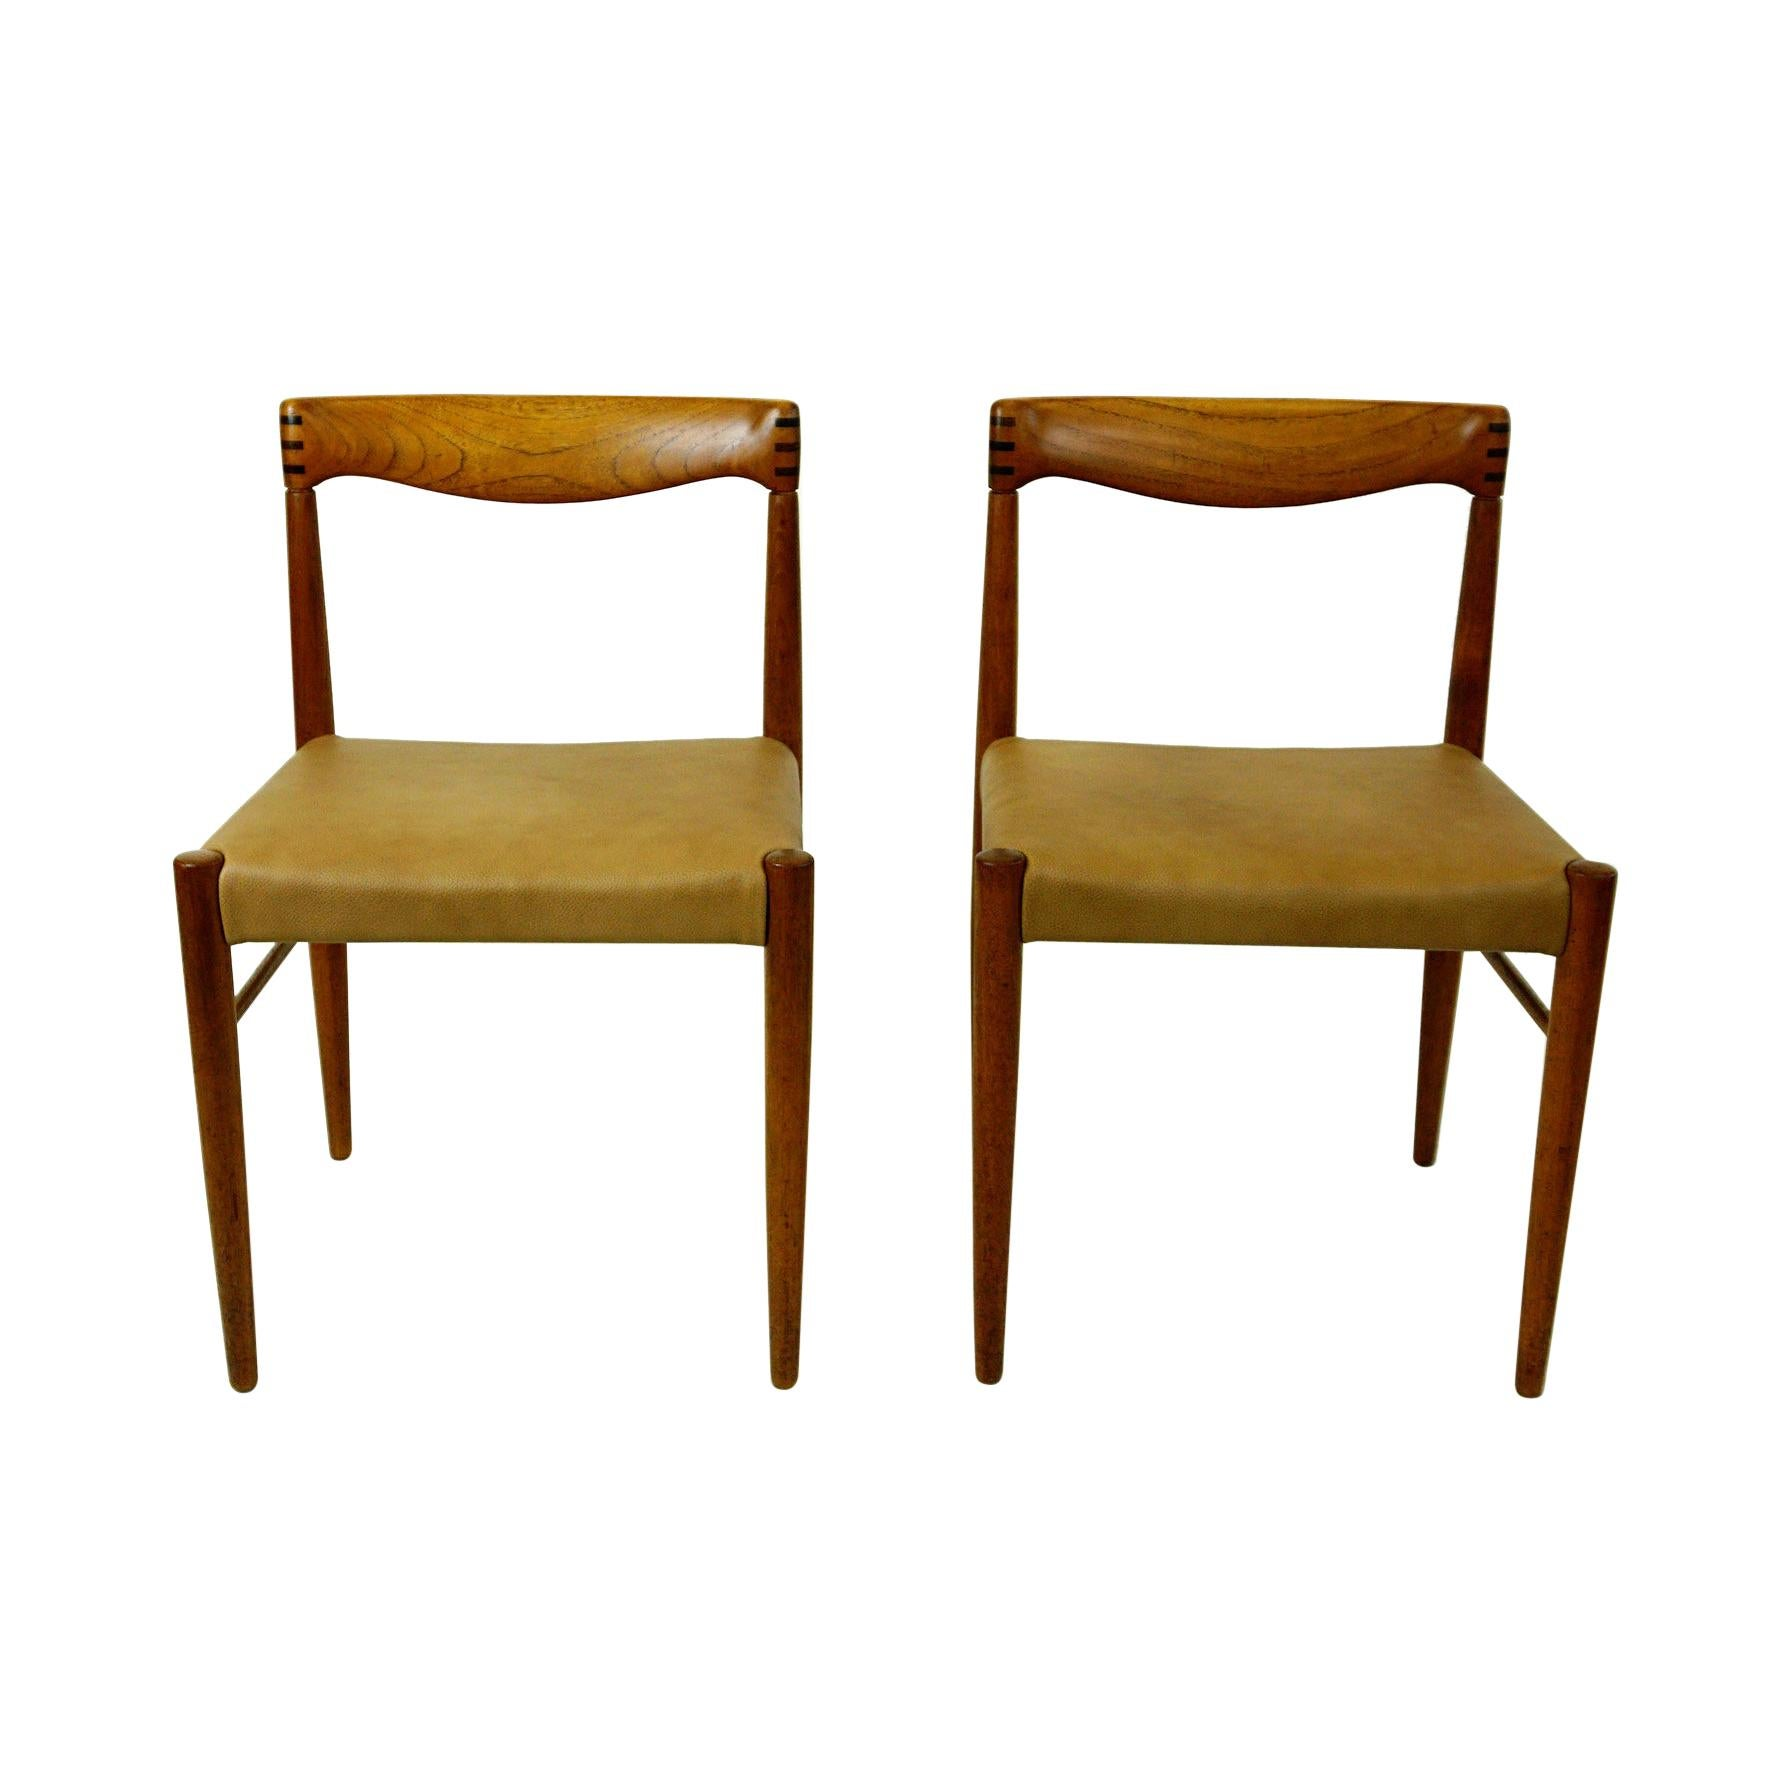 Set of Two Scandinavian Modern Teak Dining Chairs by H. W. Klein for Bramin